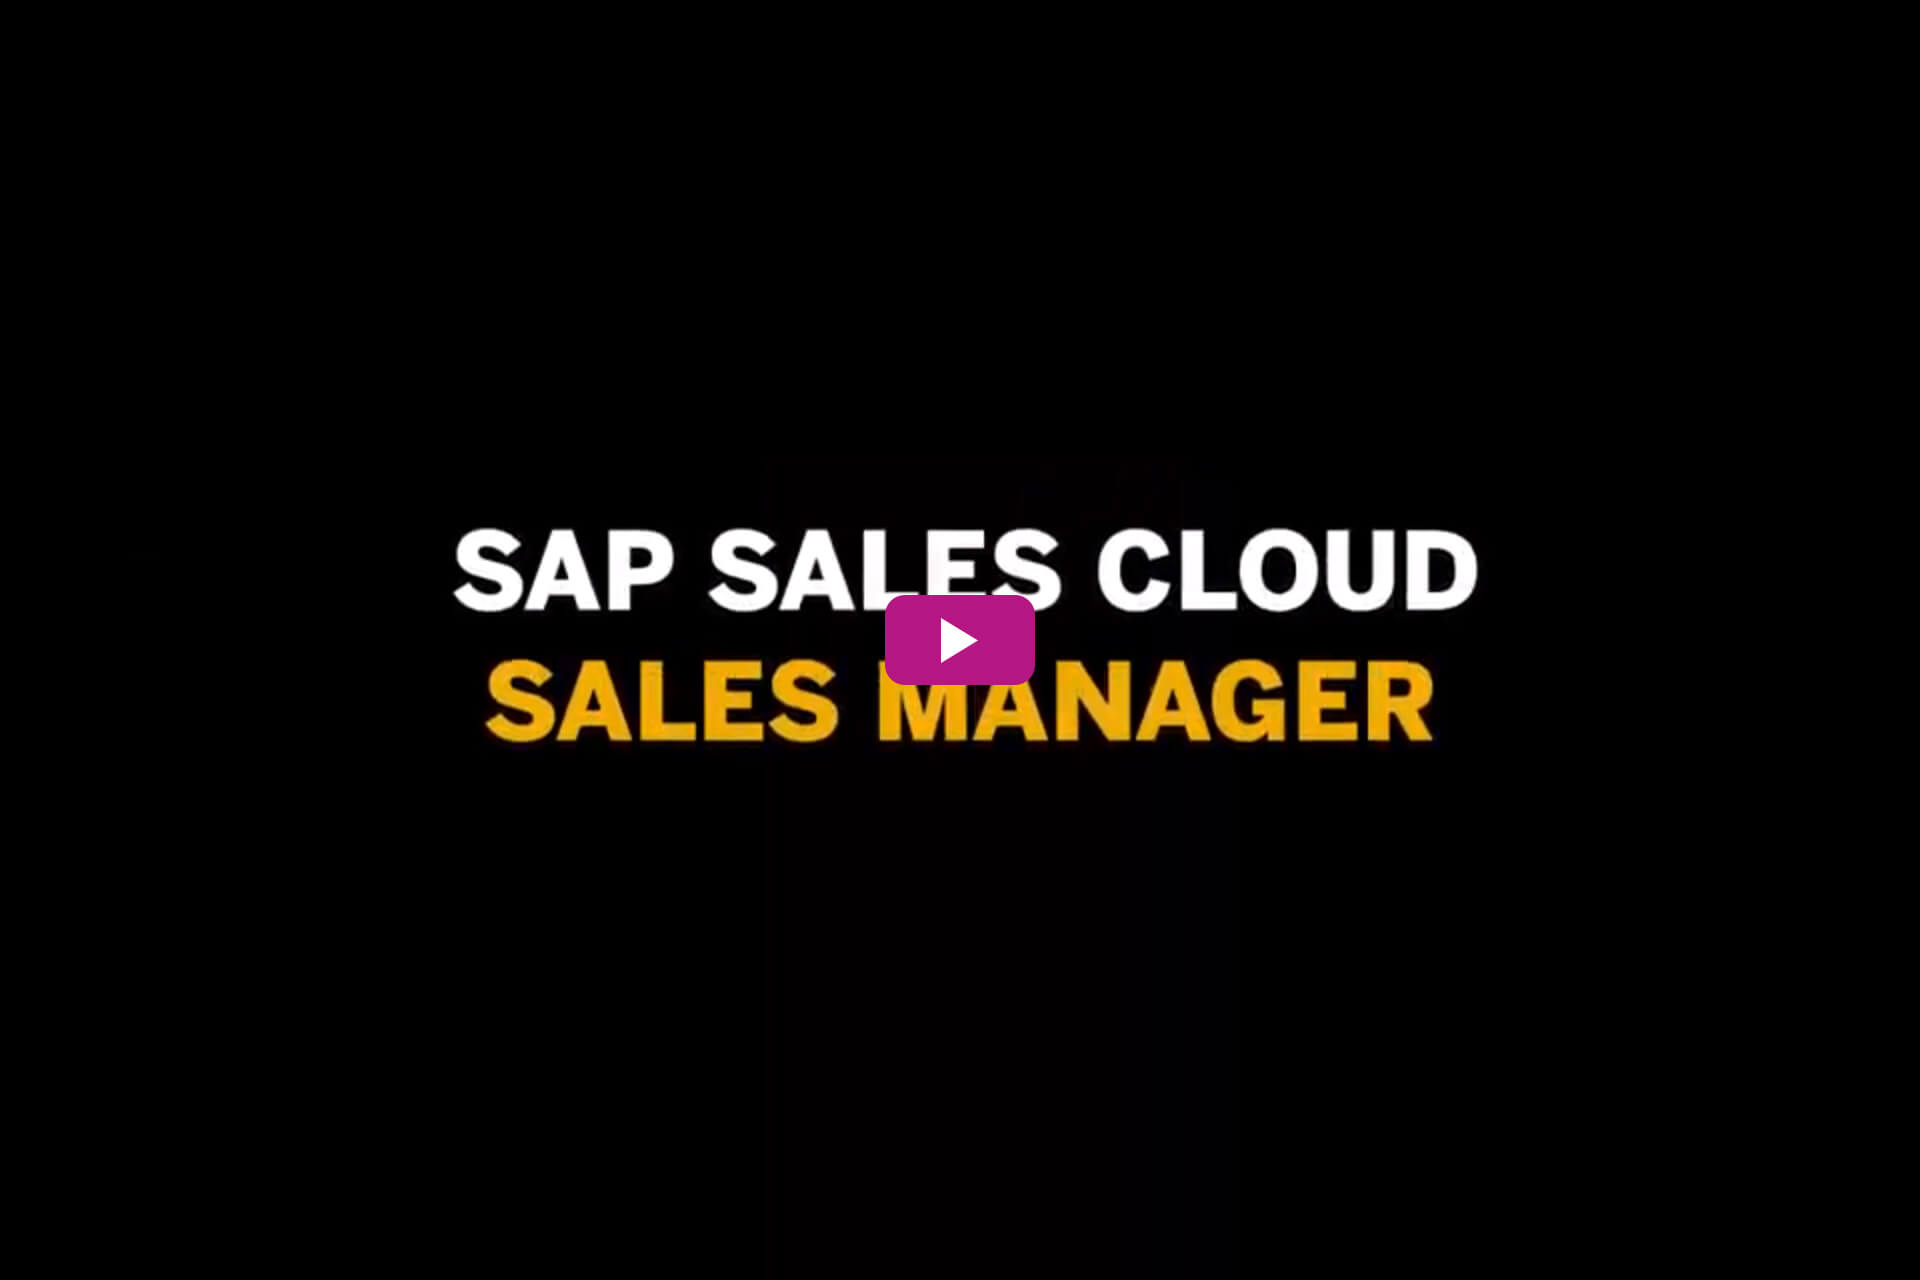 Vorschau zum Video SAP Sales Cloud: Sales Manager